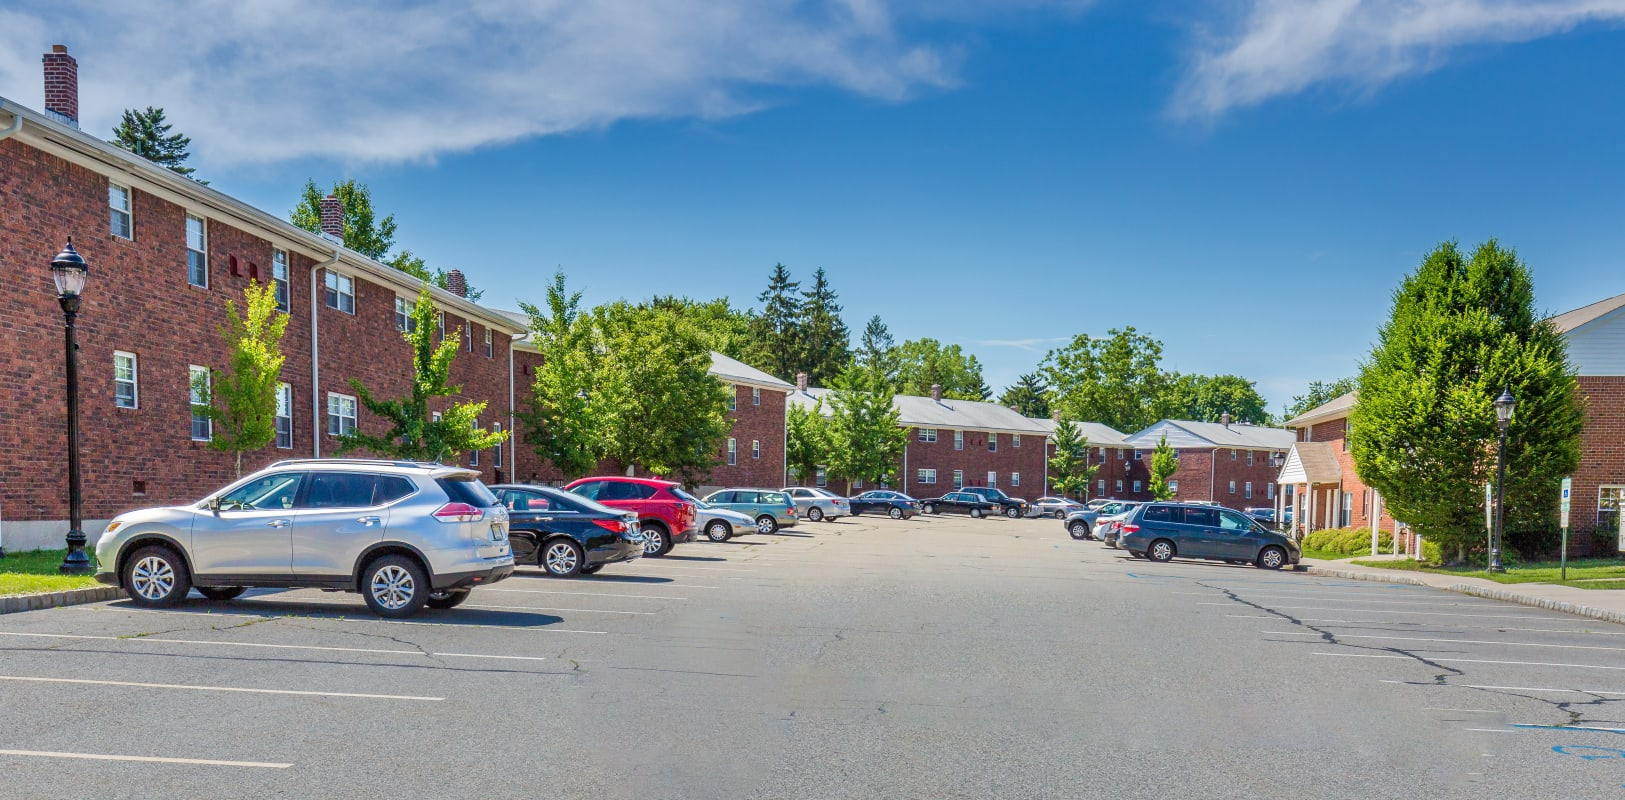 Large parking lot with plenty of space for residents to park at Nottingham Manor in Montvale, New Jersey